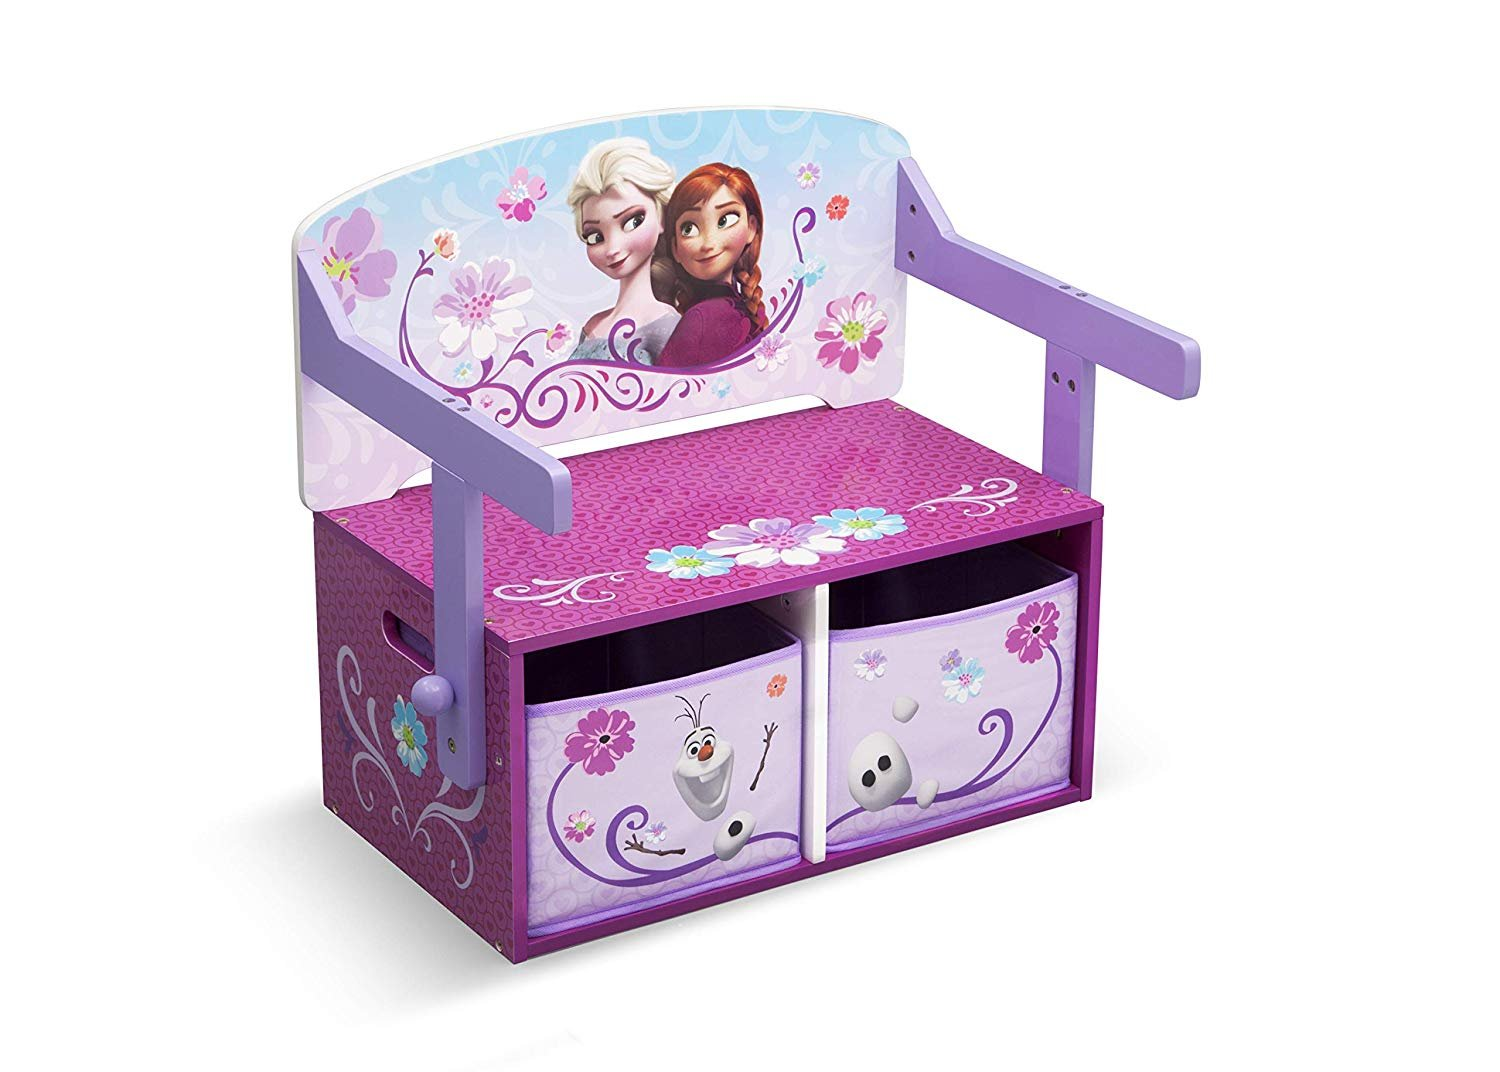 Disney Frozen 3 in 1 Storage Bench and Desk